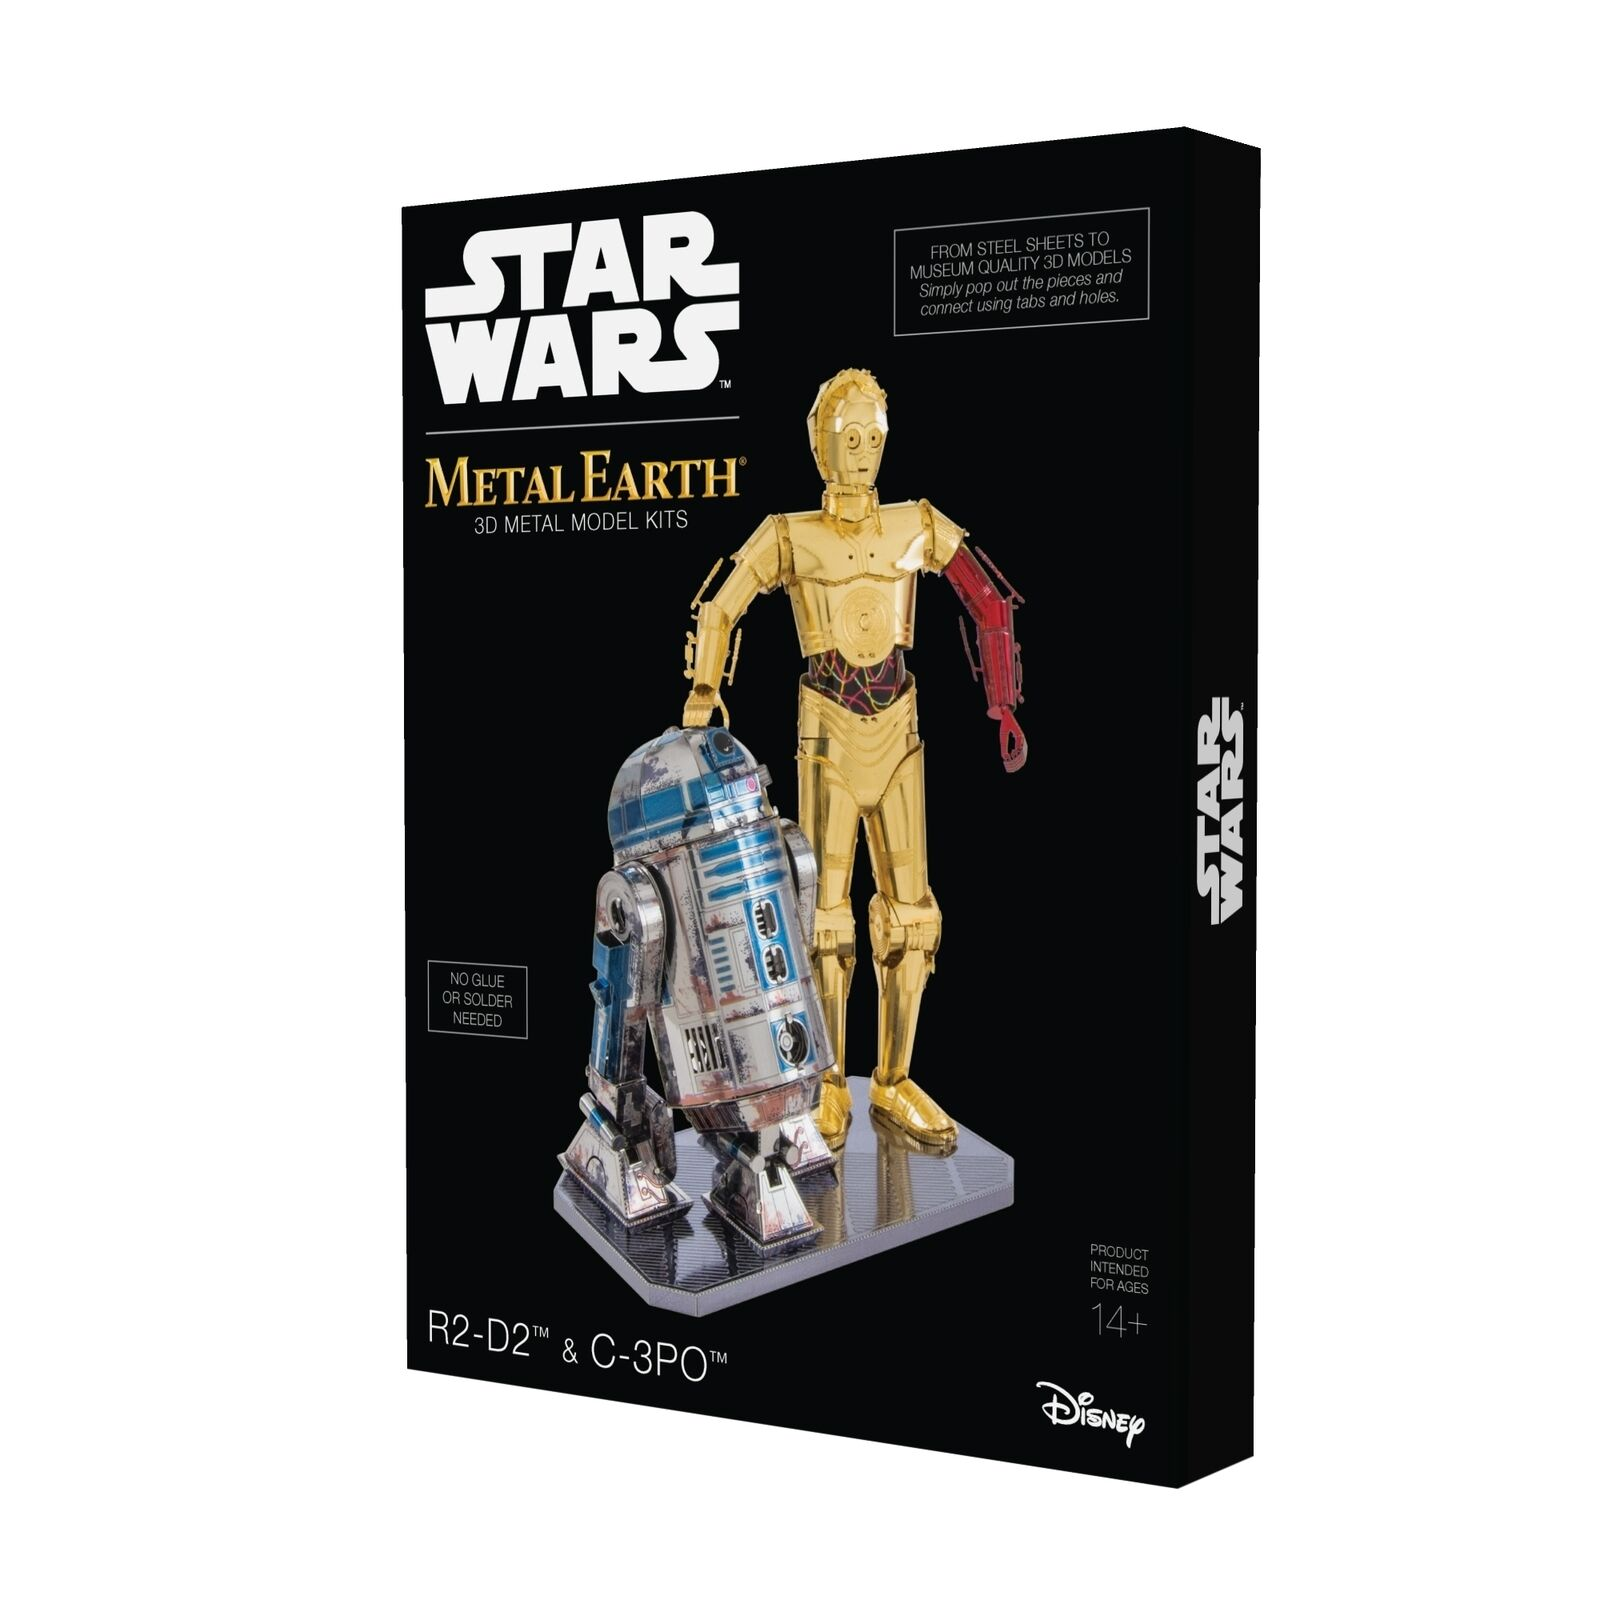 STAR WARS C-3PO & R2-D2 DELUXE DELUXE DELUXE SET Star Wars Fascinations FA MMG276 2ab306